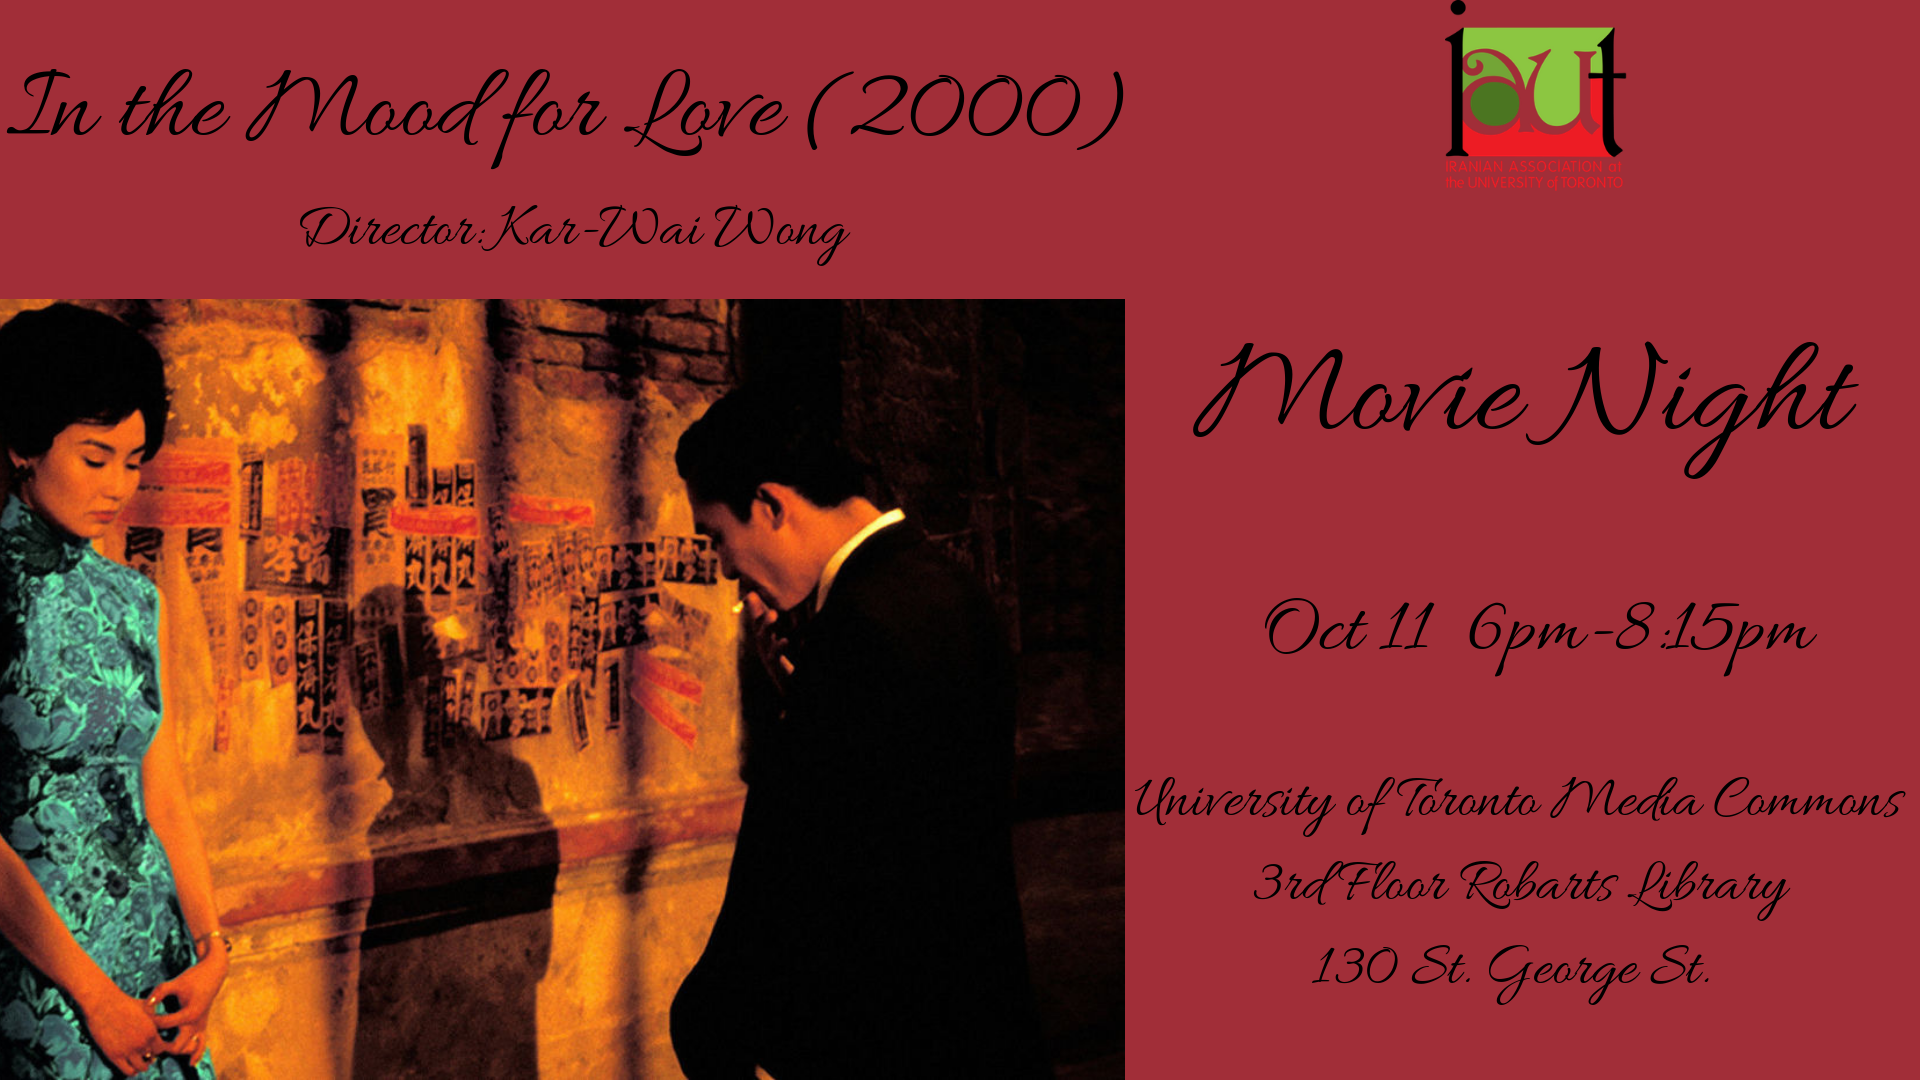 IAUT Movie Night – In the Mood for Love (2000)